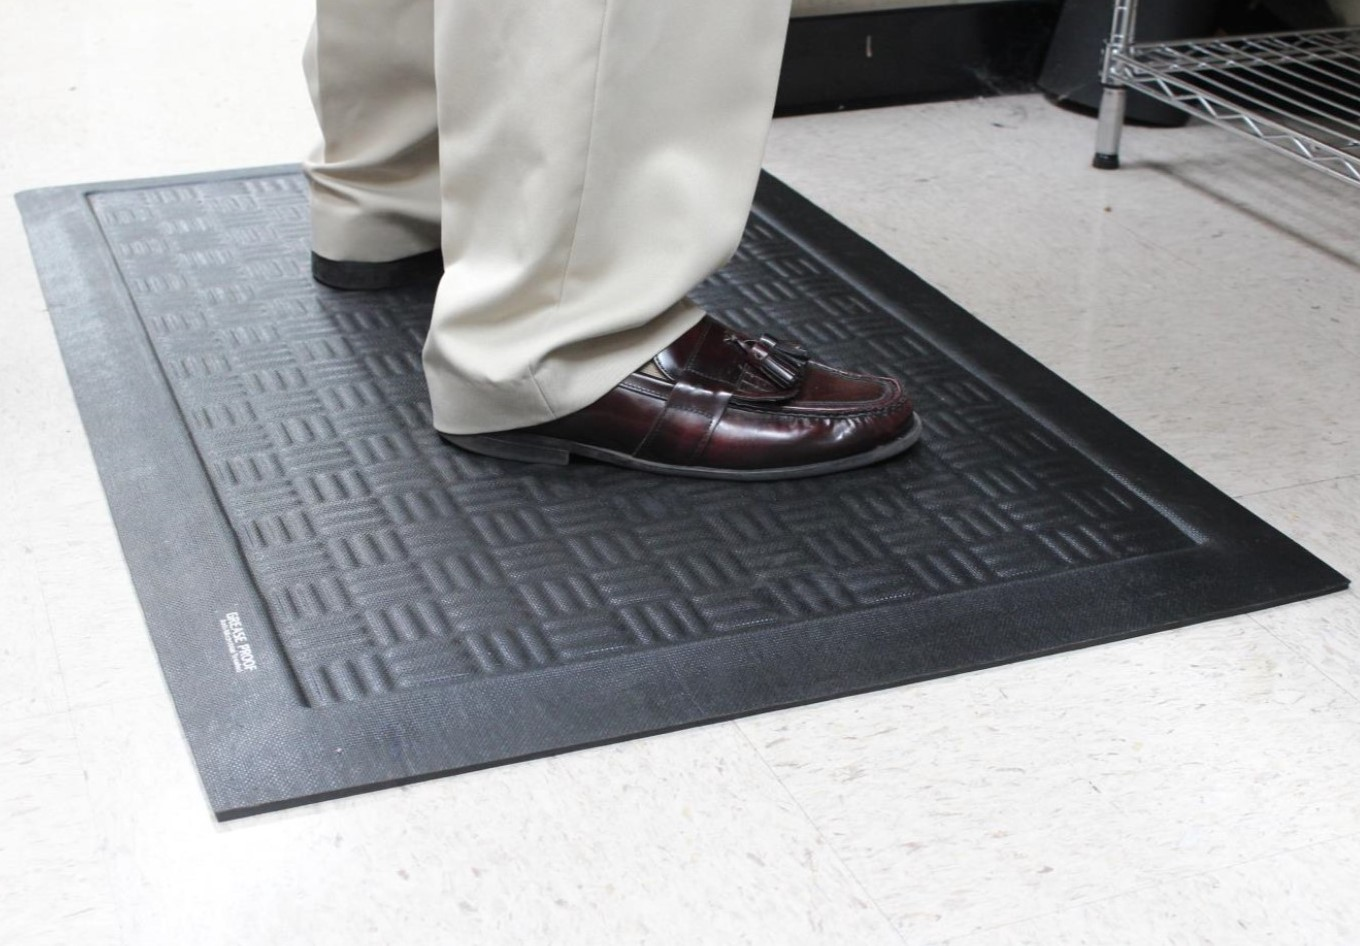 Region's Healthcare Facilities Turn to Chester-Based Health Mats for Comfort, Safety